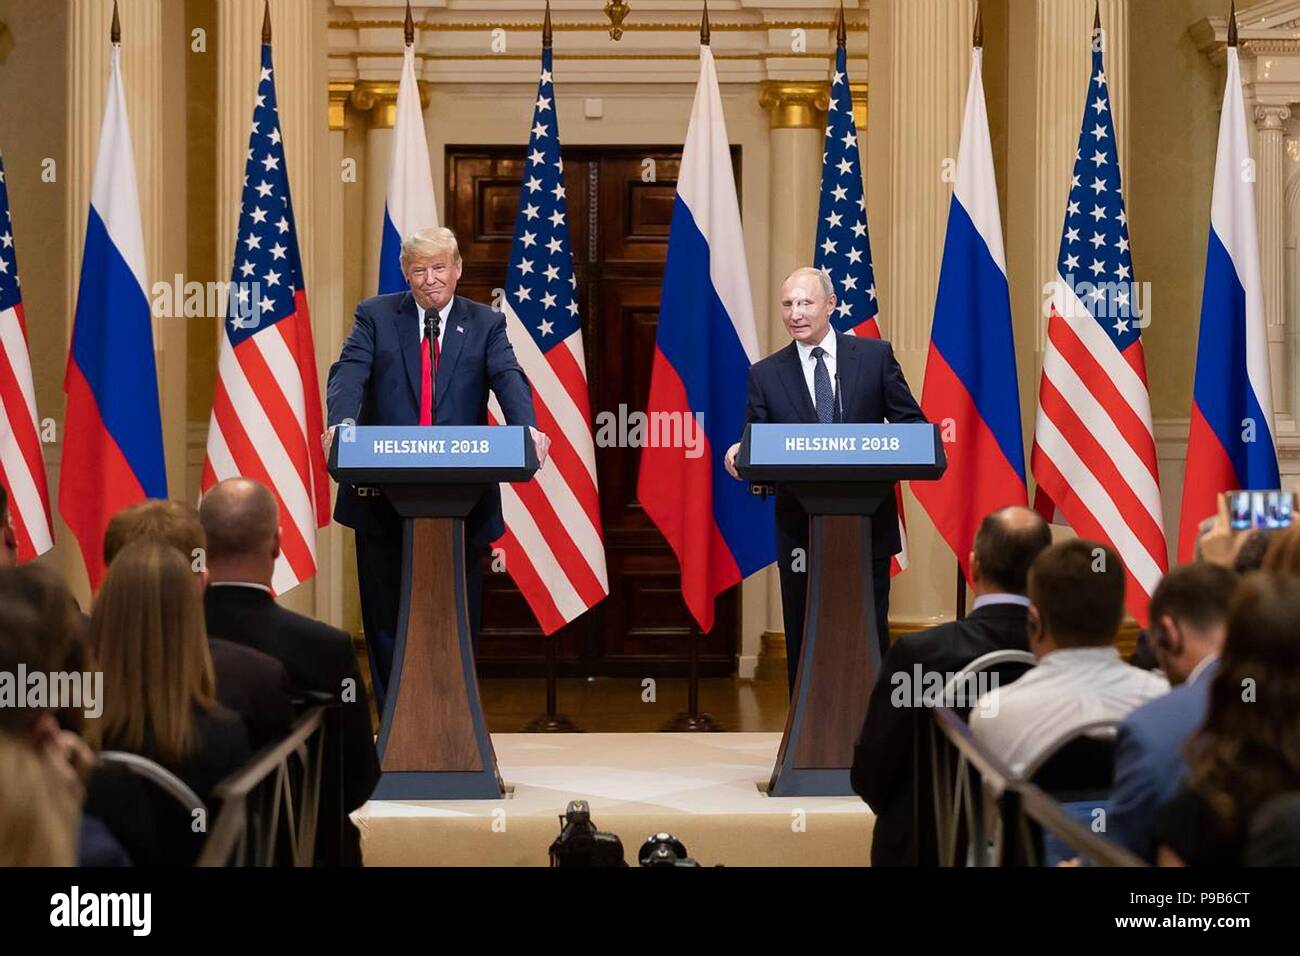 Russian President Vladimir Putin with U.S. President Donald Trump during a joint press conference at the conclusion of the U.S. - Russia Summit meeting at the Presidential Palace July 16, 2018 in Helsinki, Finland. - Stock Image